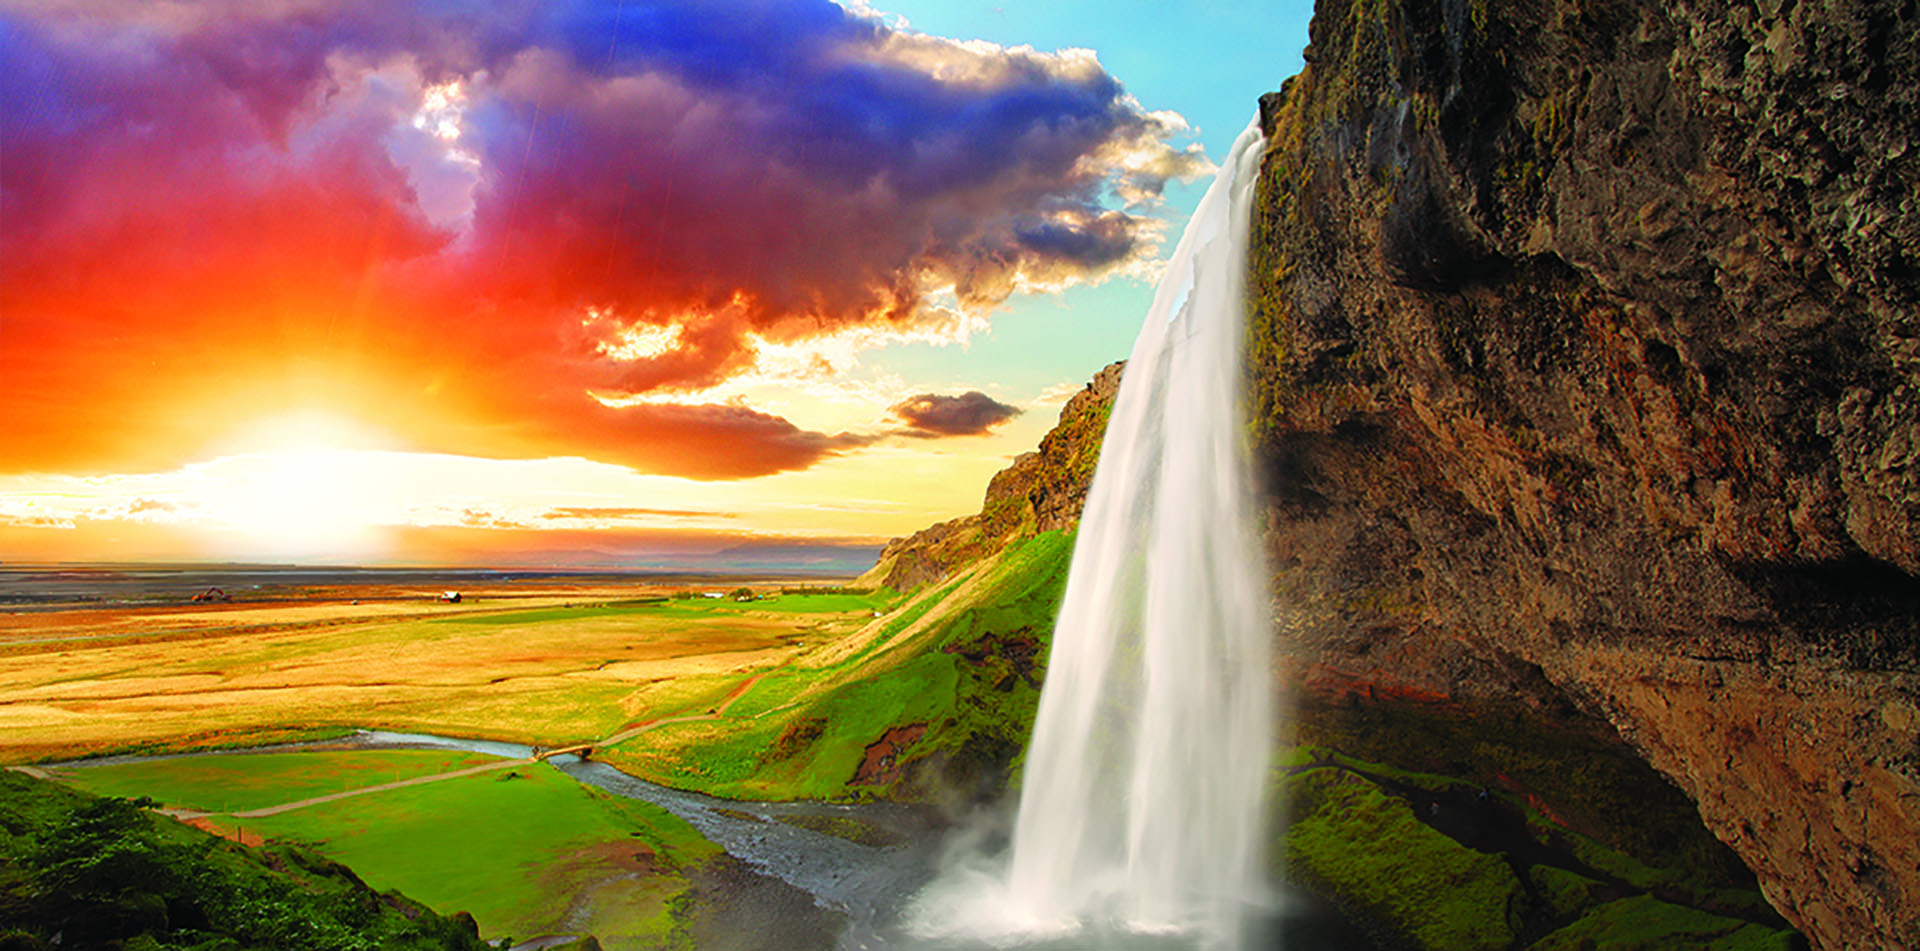 Waterfall at Sunset, Iceland